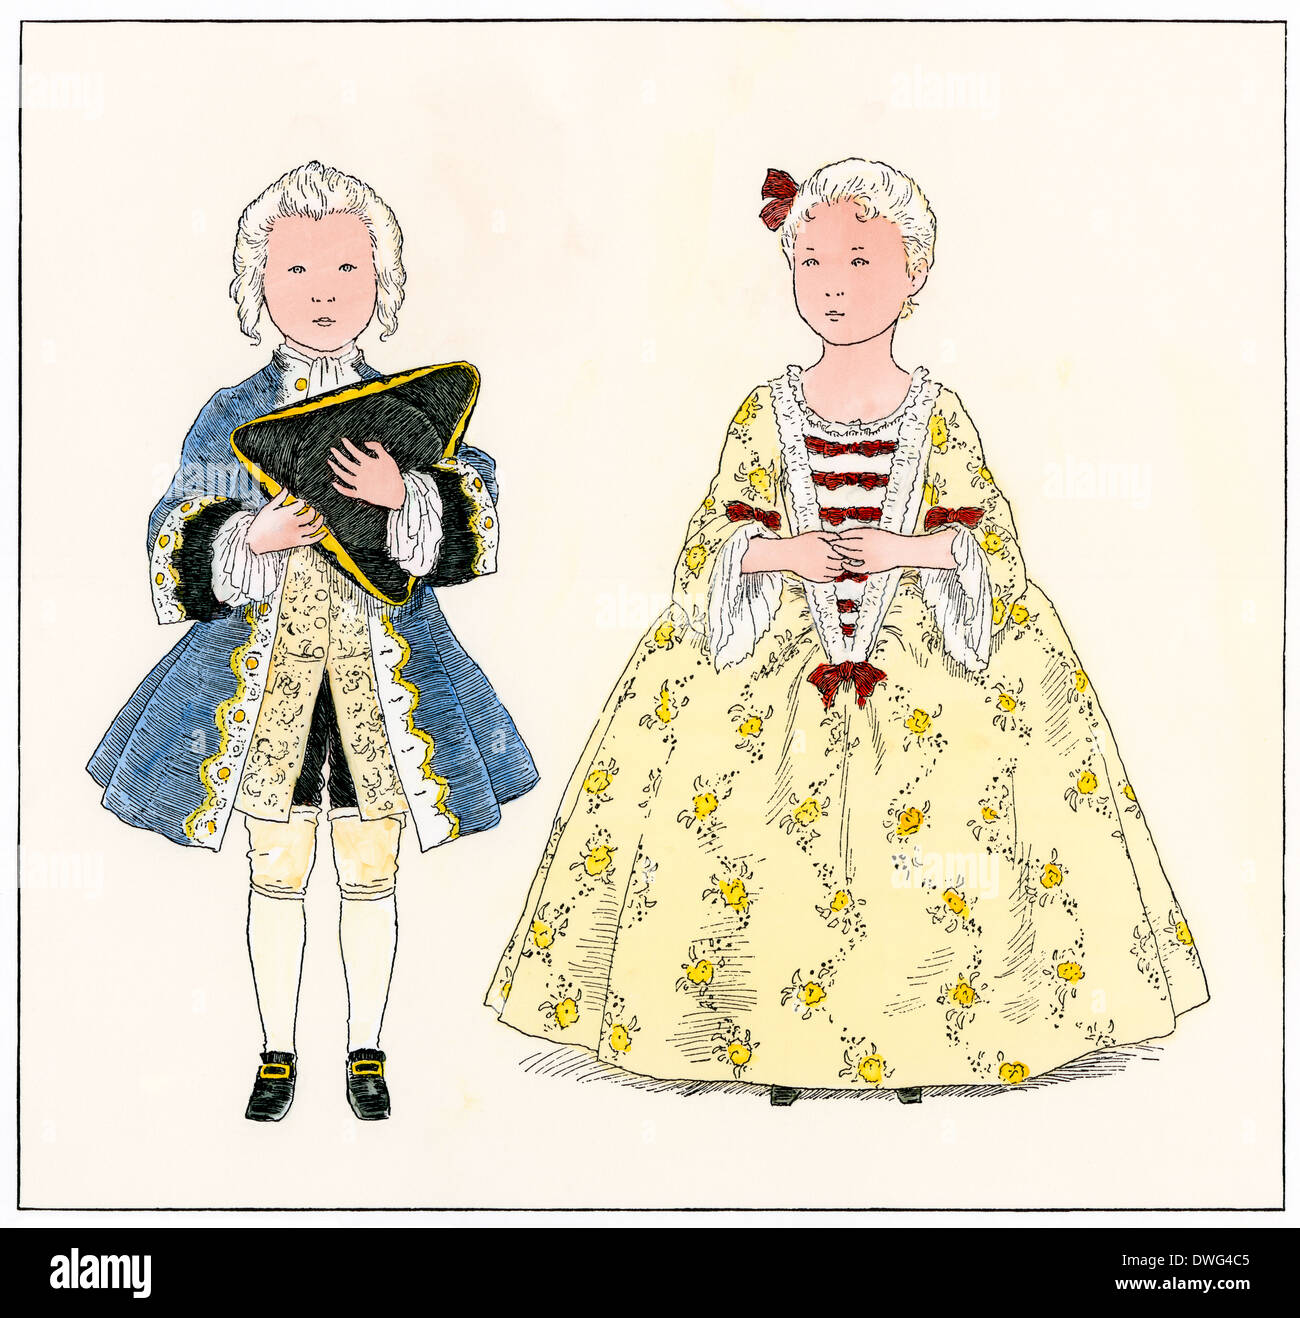 Aristocratic French children dressed as adults, 1700s. Hand-colored woodcut - Stock Image